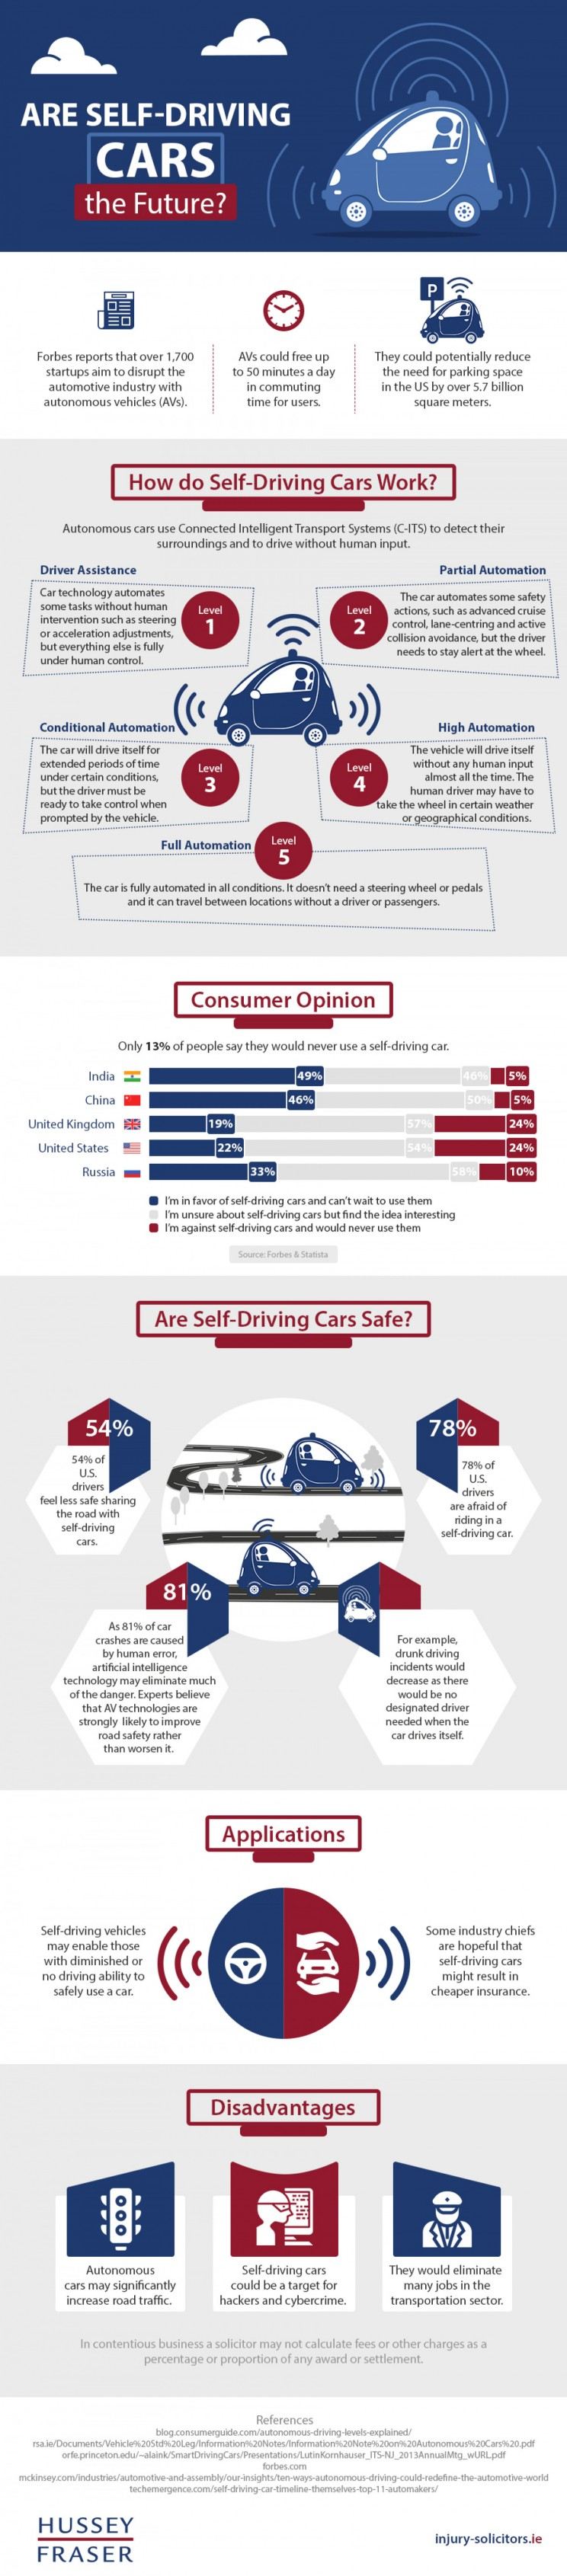 Are Self-Driving Cars The Future of Transportation? [Infographic]